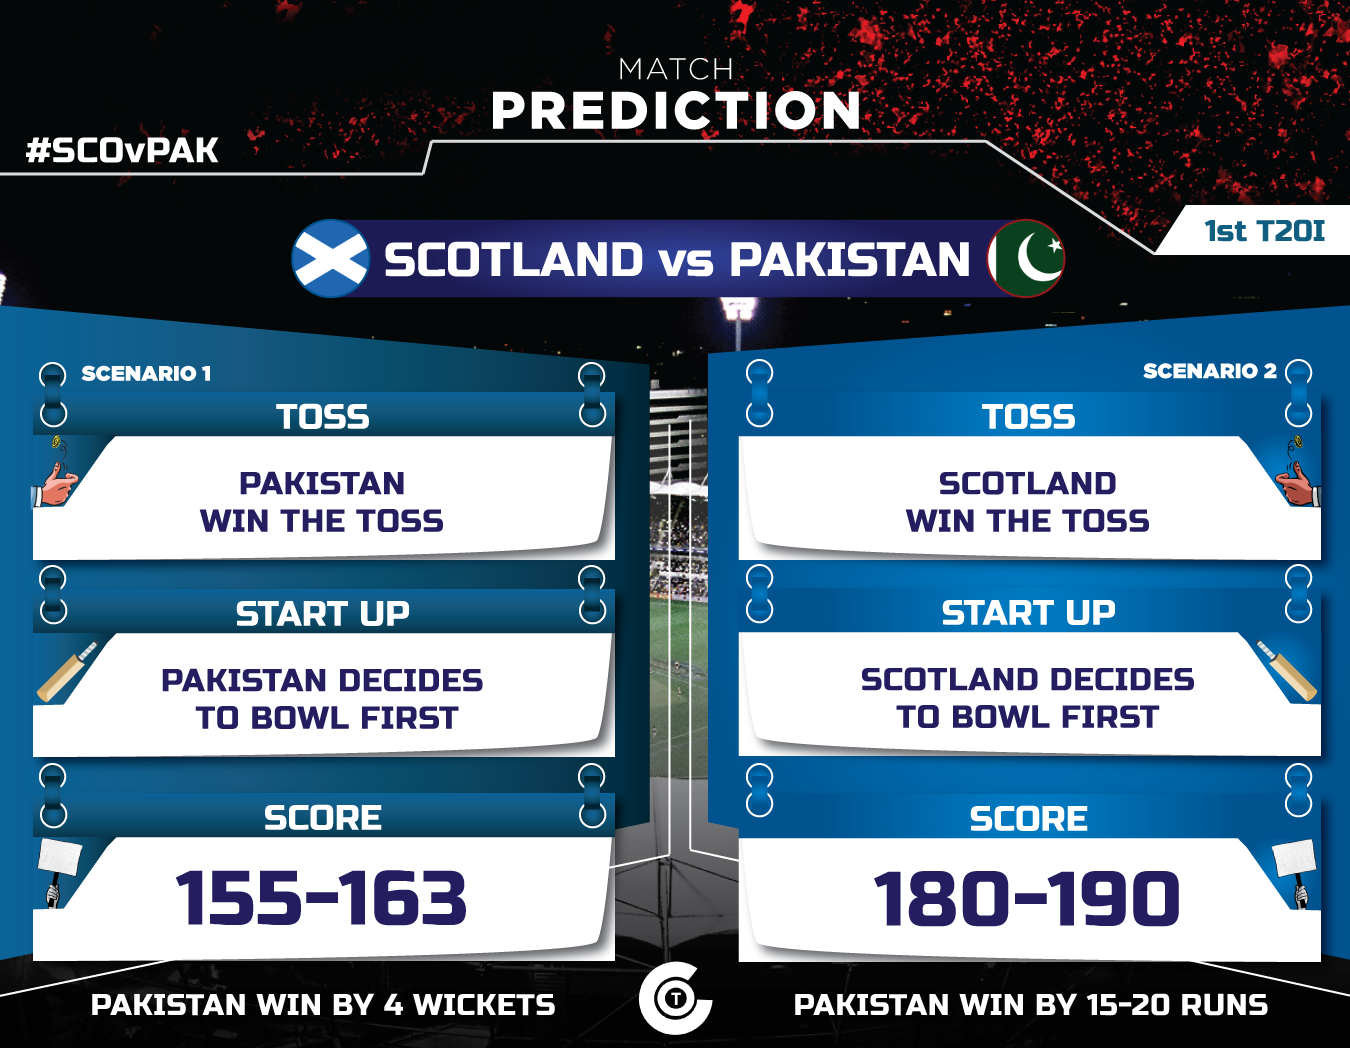 SCO-vs-PAK,-1st-T20I---Match-Prediction-Who-will-win-the-match,-Scotland-or-Pakistan